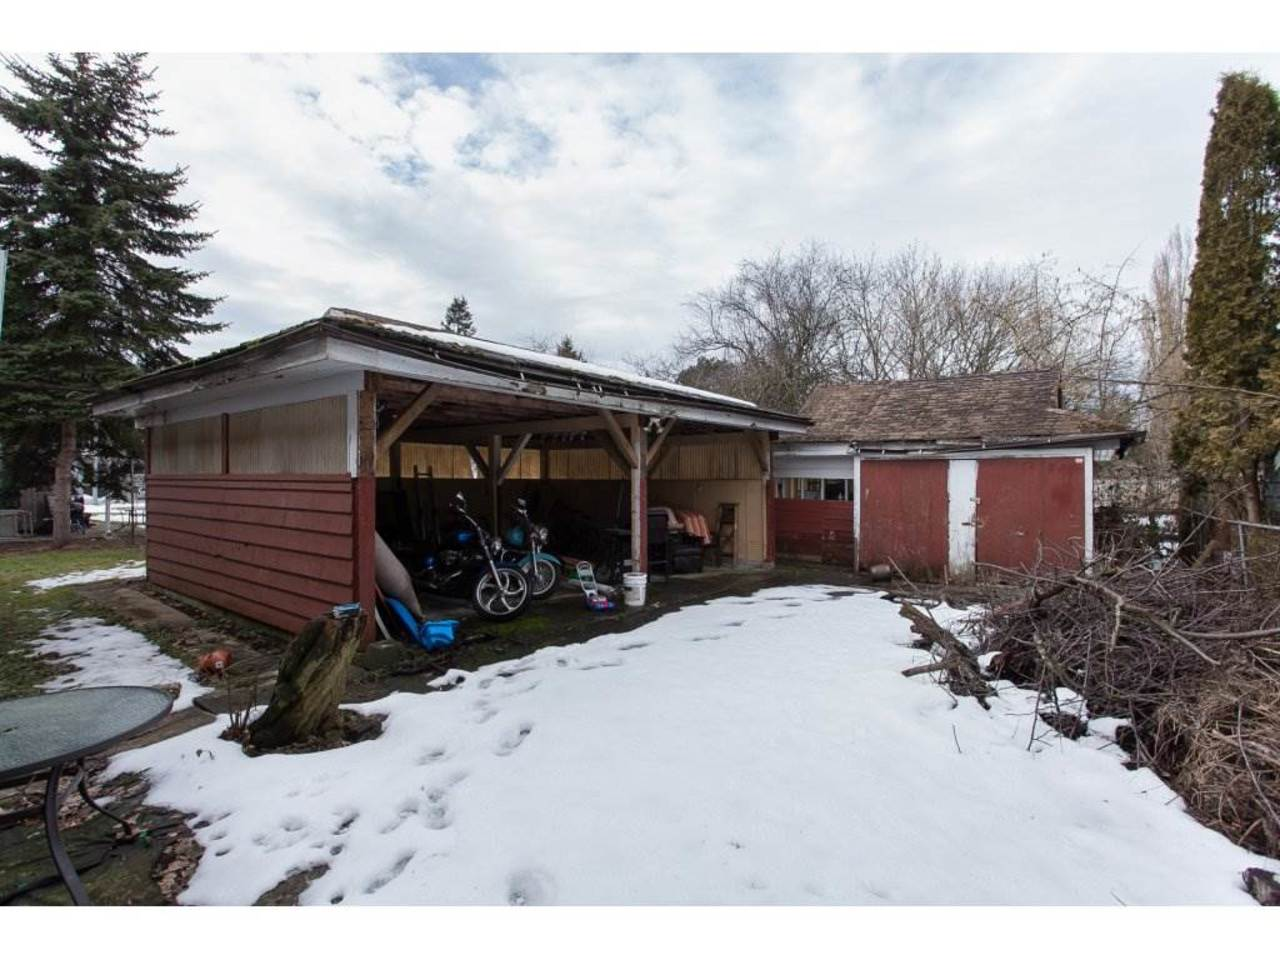 Carport -Listed by Solon REM, Top Langley & Fraser Valley Realtor  at 19943 Brydon, Langley City, Langley